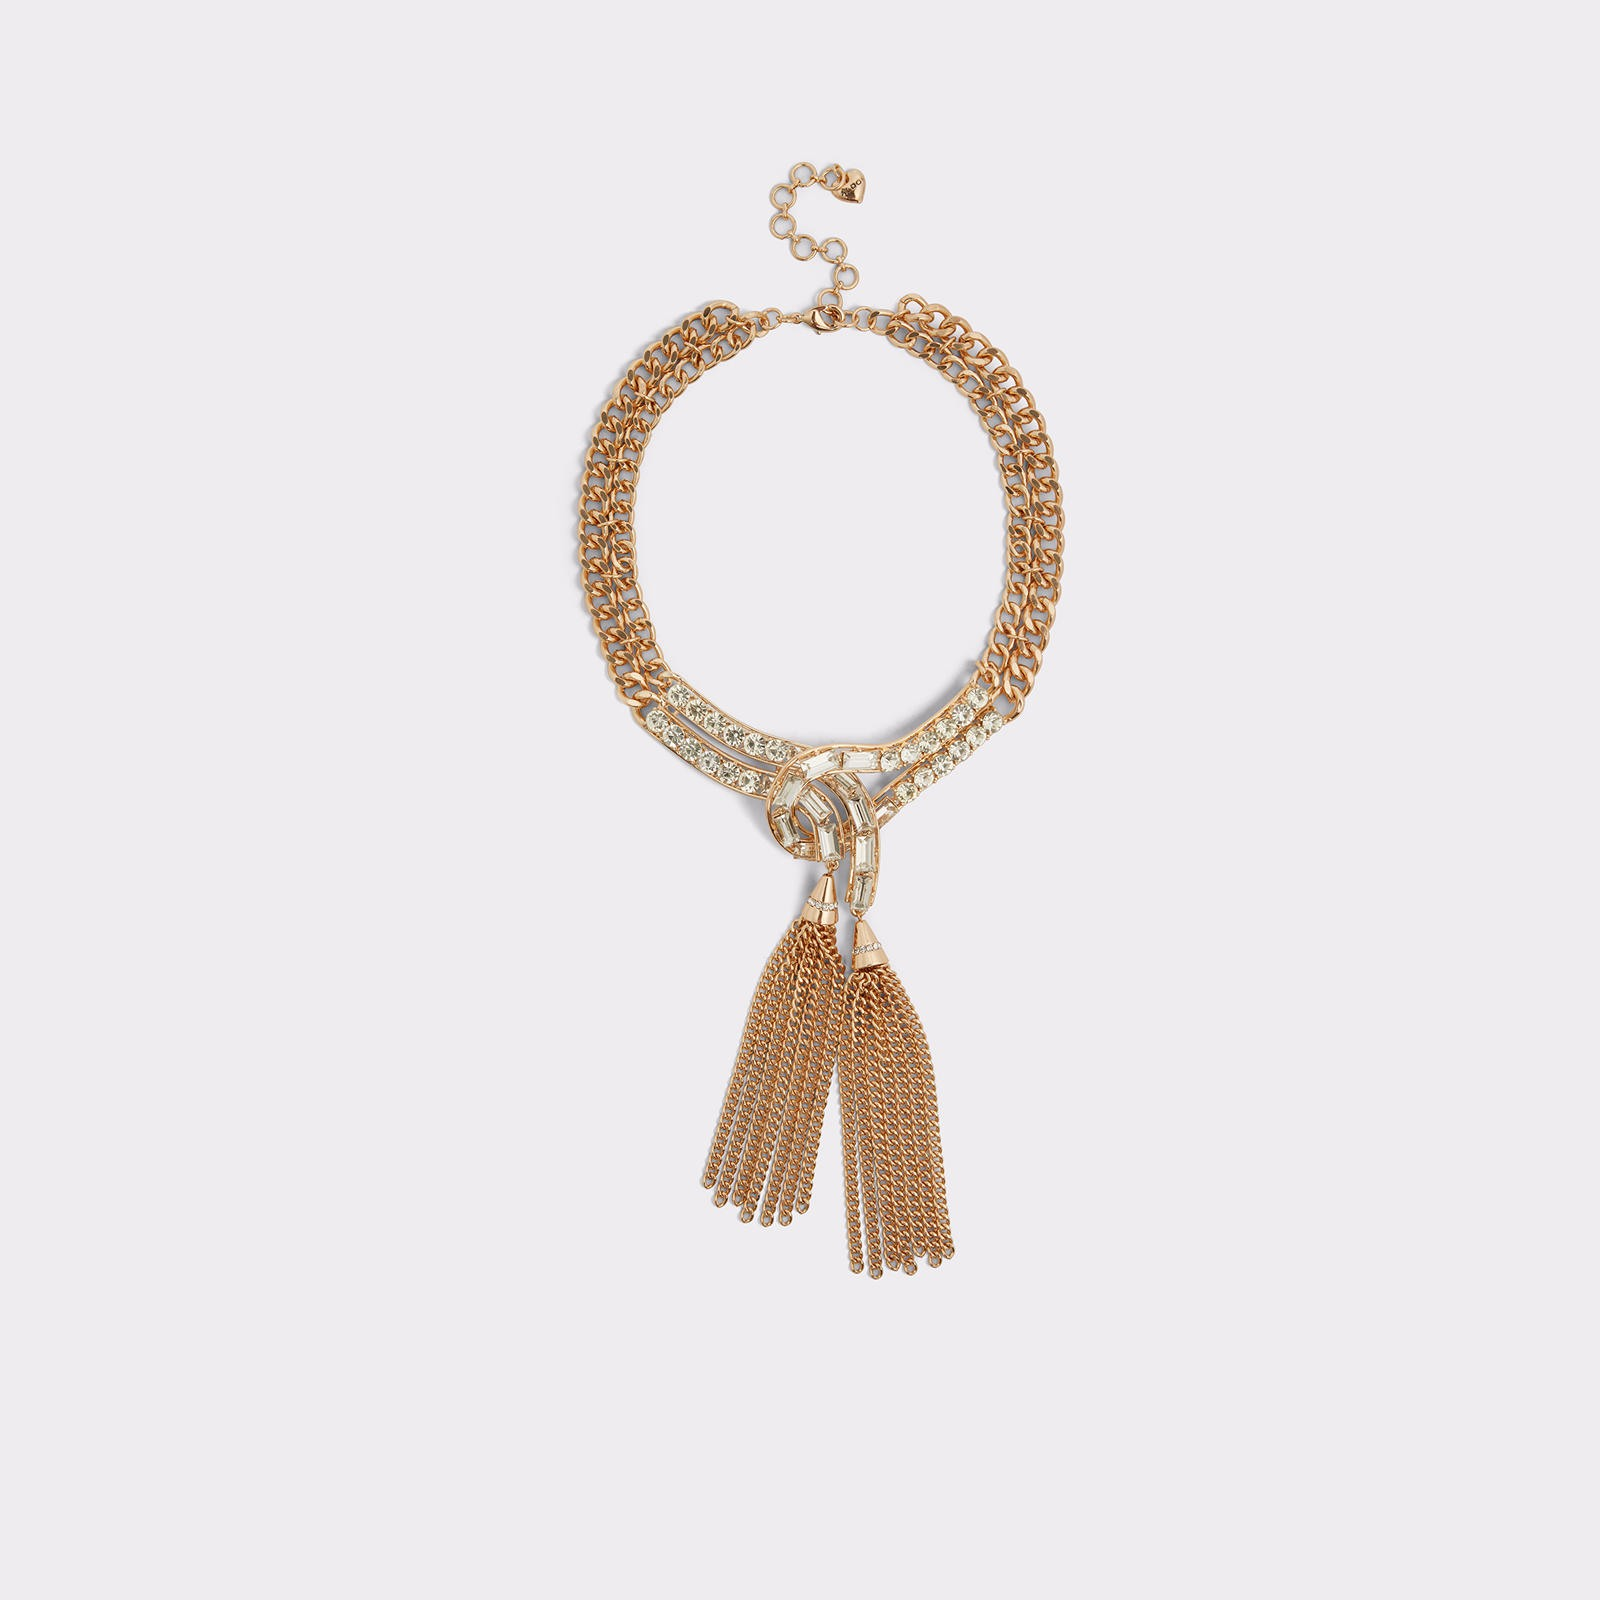 Aldo Cementara Milk Women's Necklace | Hermosaz